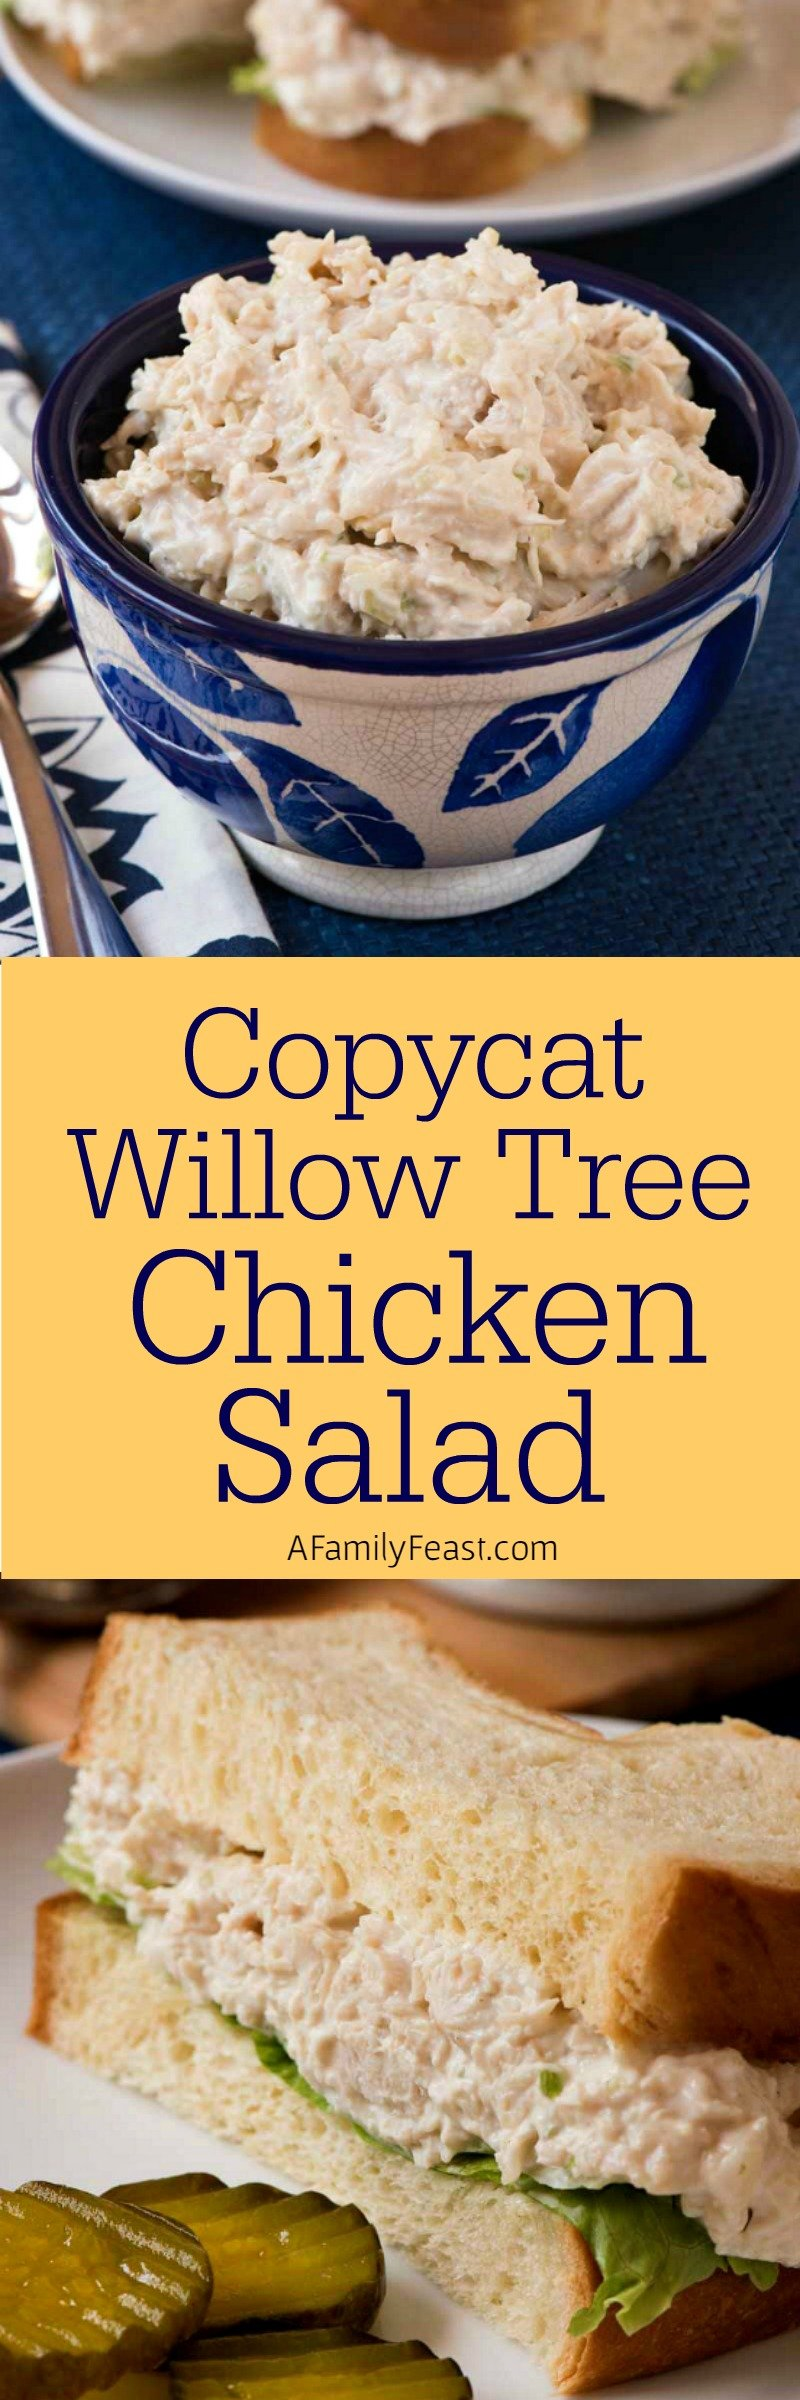 Copycat Willow Tree Chicken Salad - Our attempt at recreating the famous Willow Tree chicken salad - and I think we're pretty close!